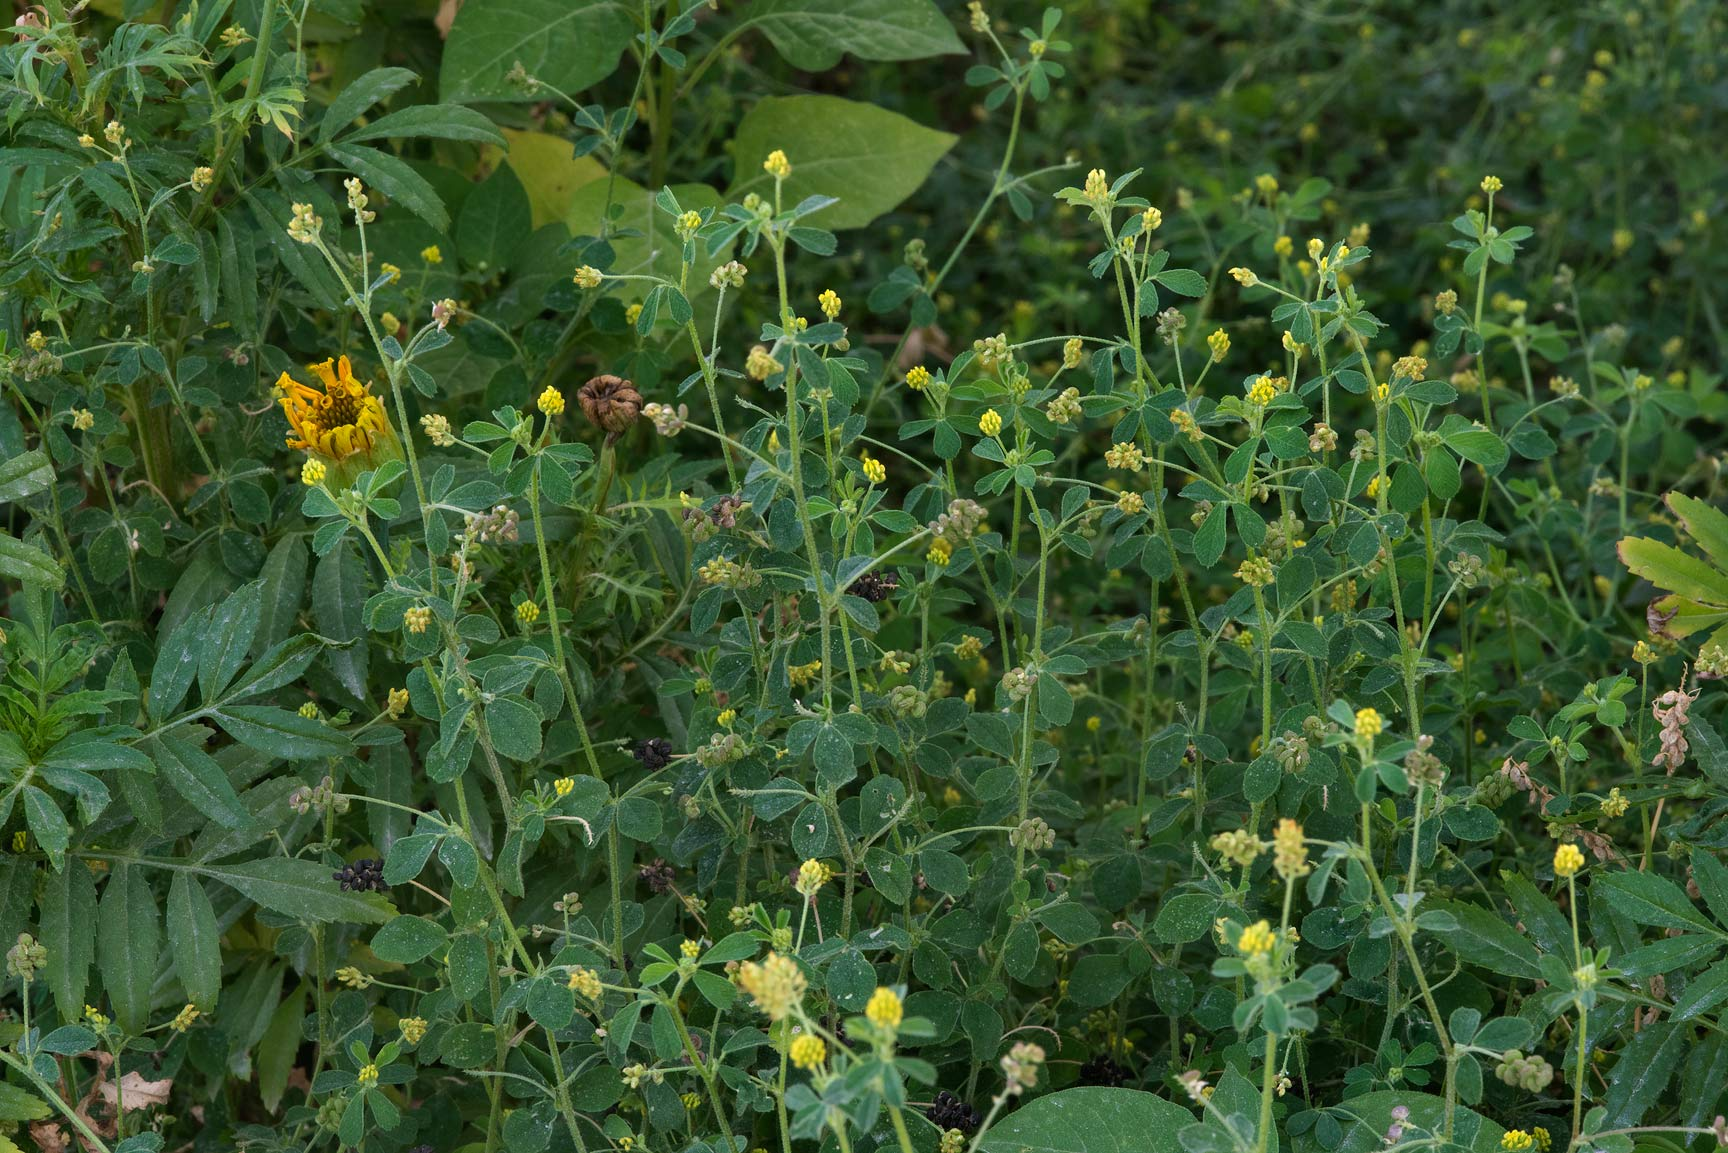 Masses of black medick (Medicago lupulina) at the...Shabi St. in Onaiza area. Doha, Qatar